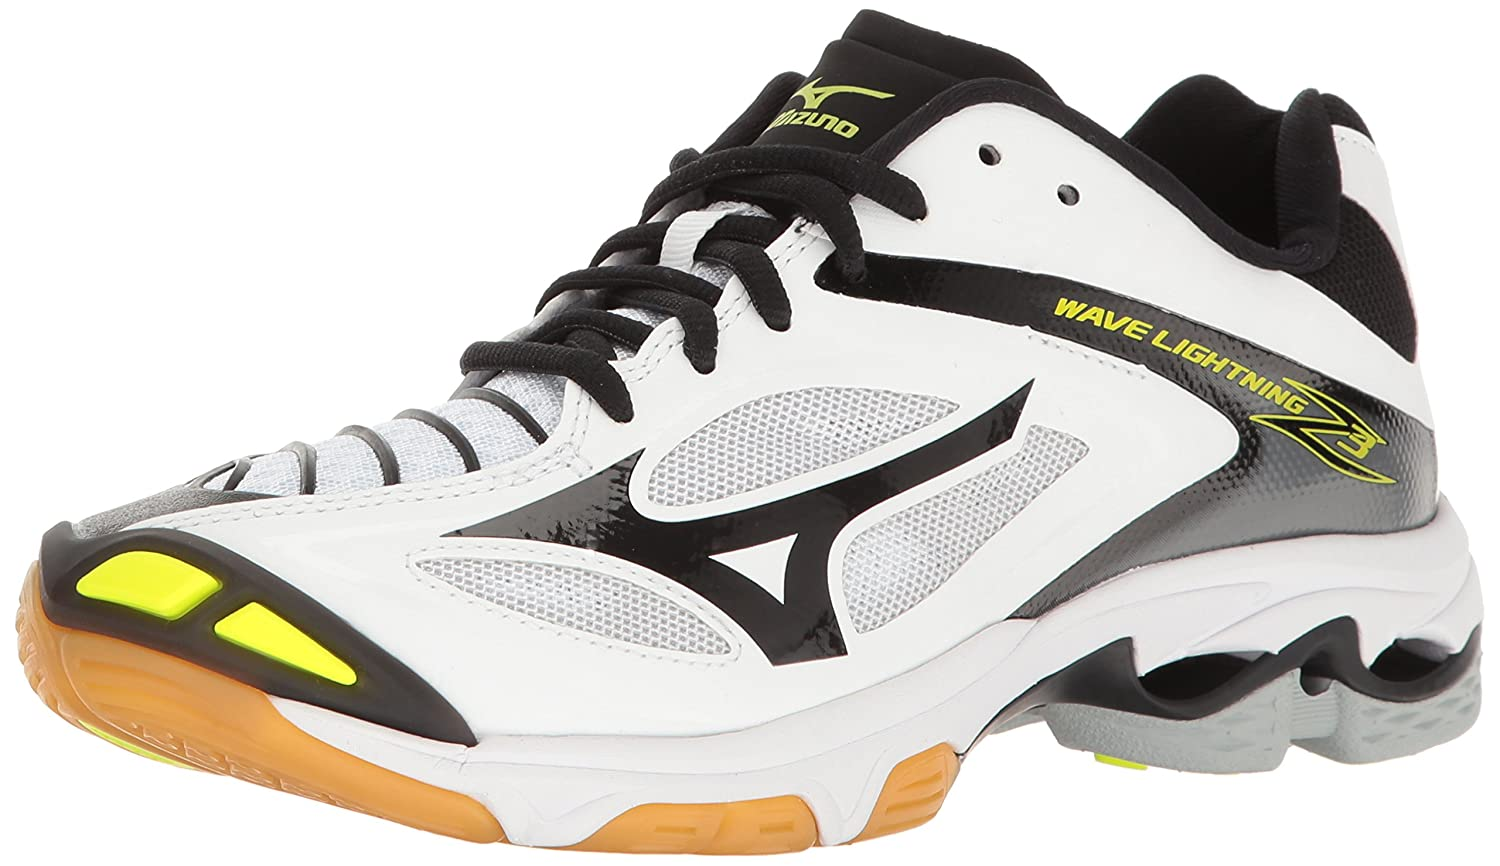 Mizuno Women's Wave Lightning Z3 Volleyball Shoe B01N8VZ7UH 13 M US|White/Black